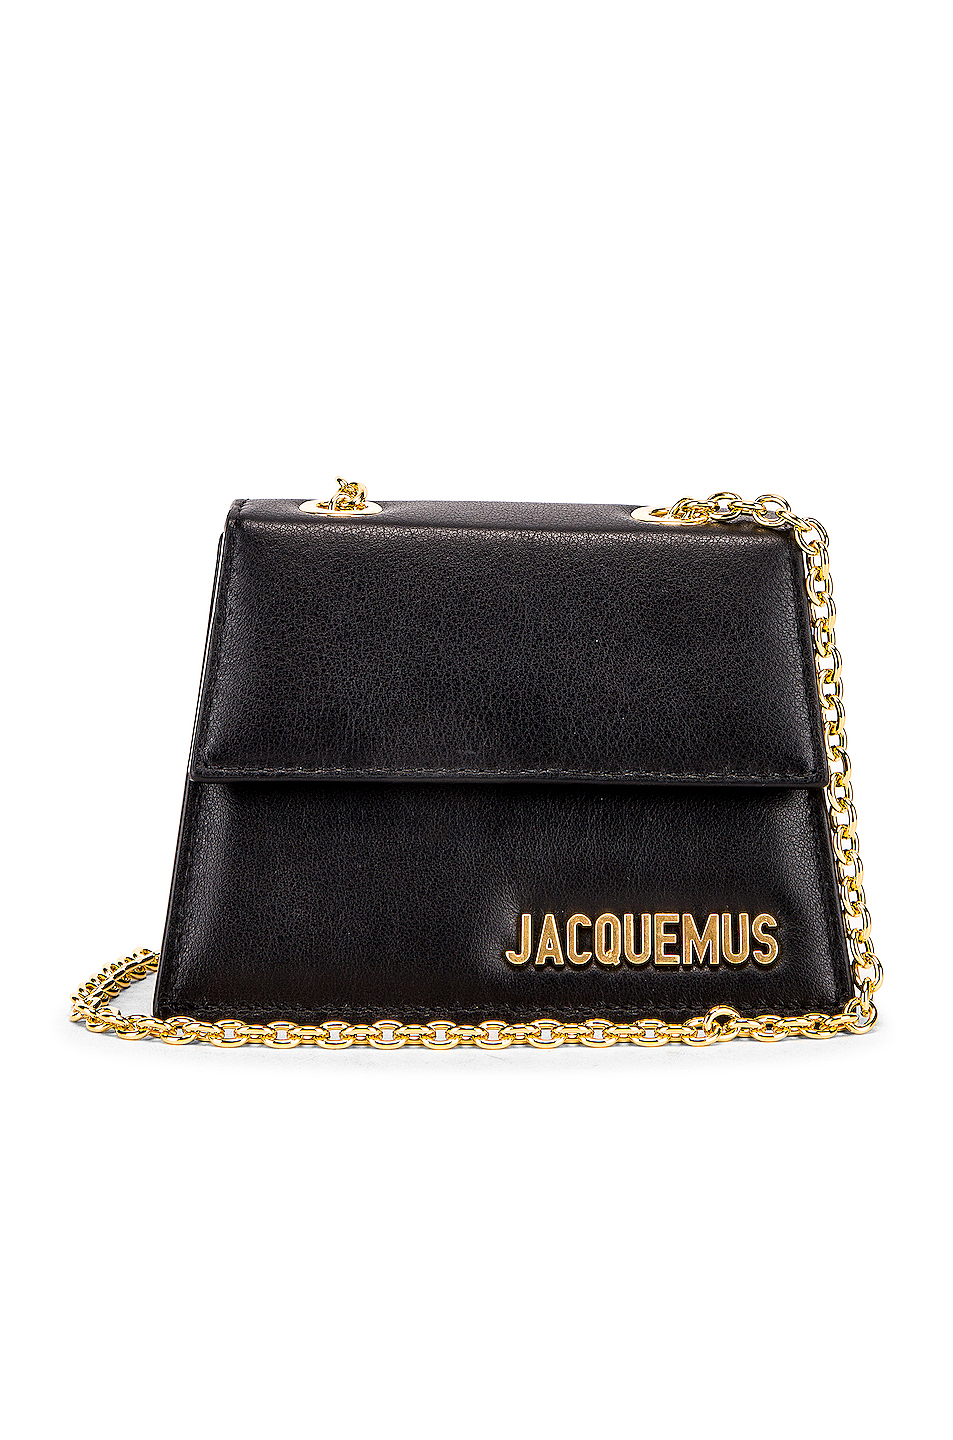 JACQUEMUS Piccolo Bag